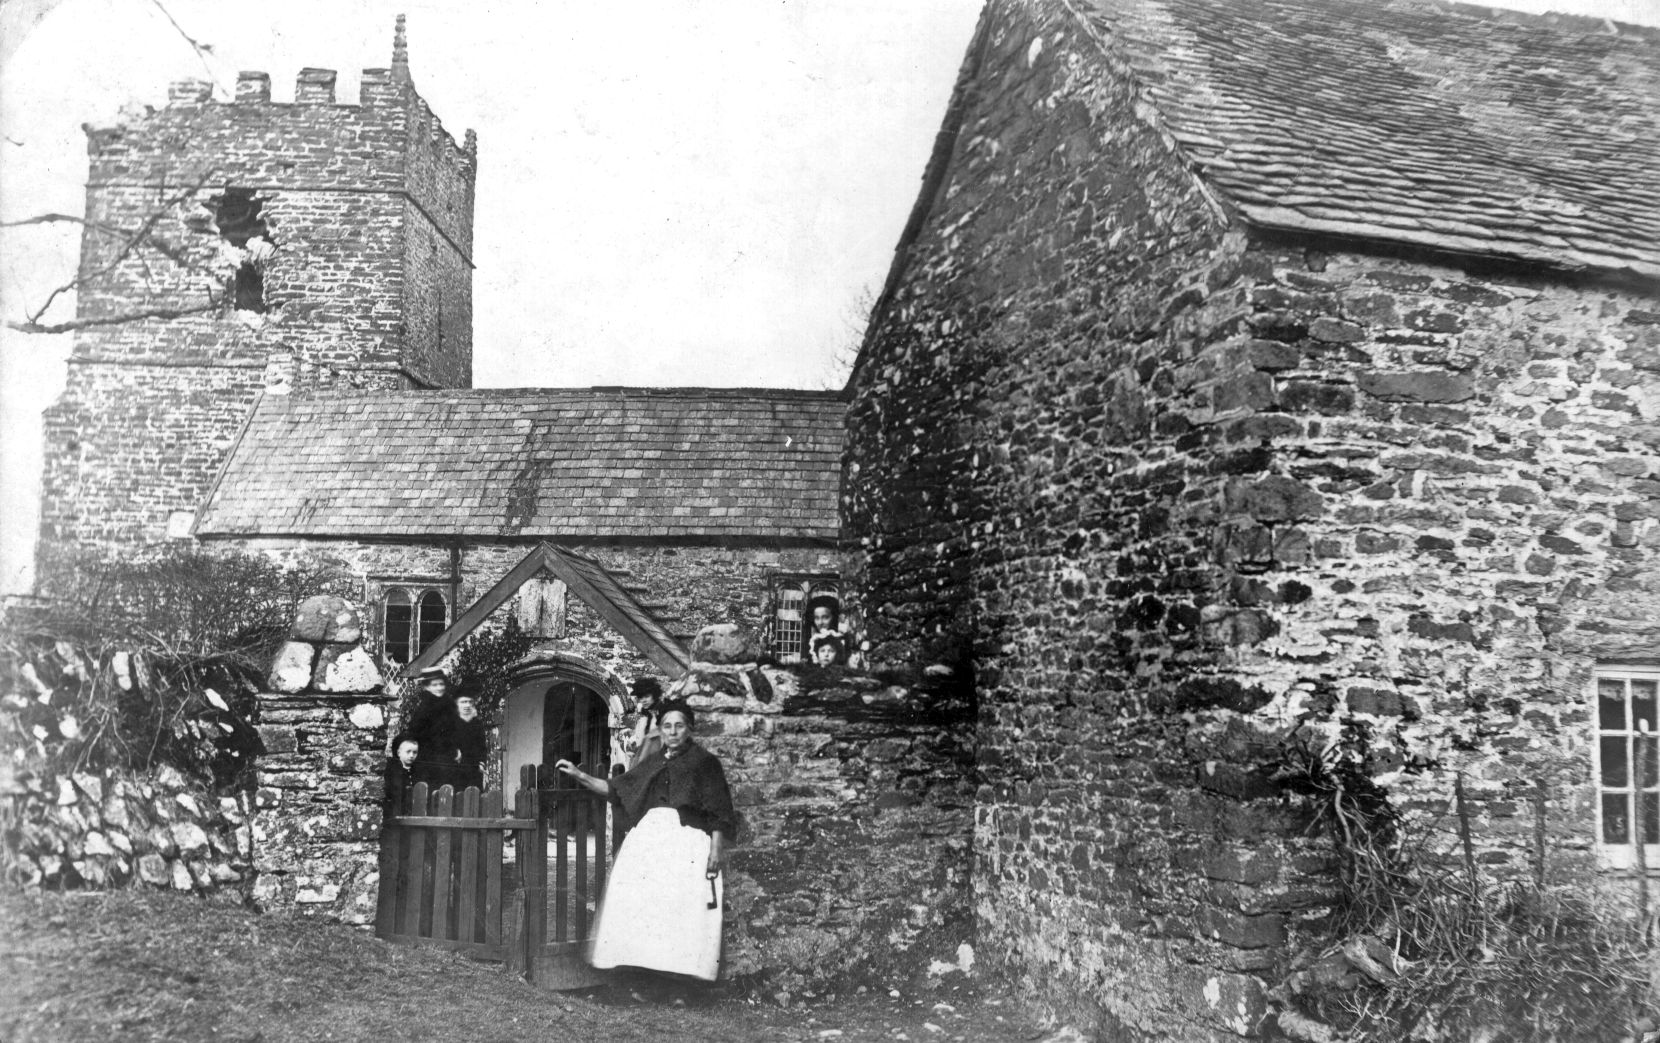 St. Petrocks Church, Parracombe, Devon.  January 1908 struck by lightening - Kind permission of Phillip Petherick